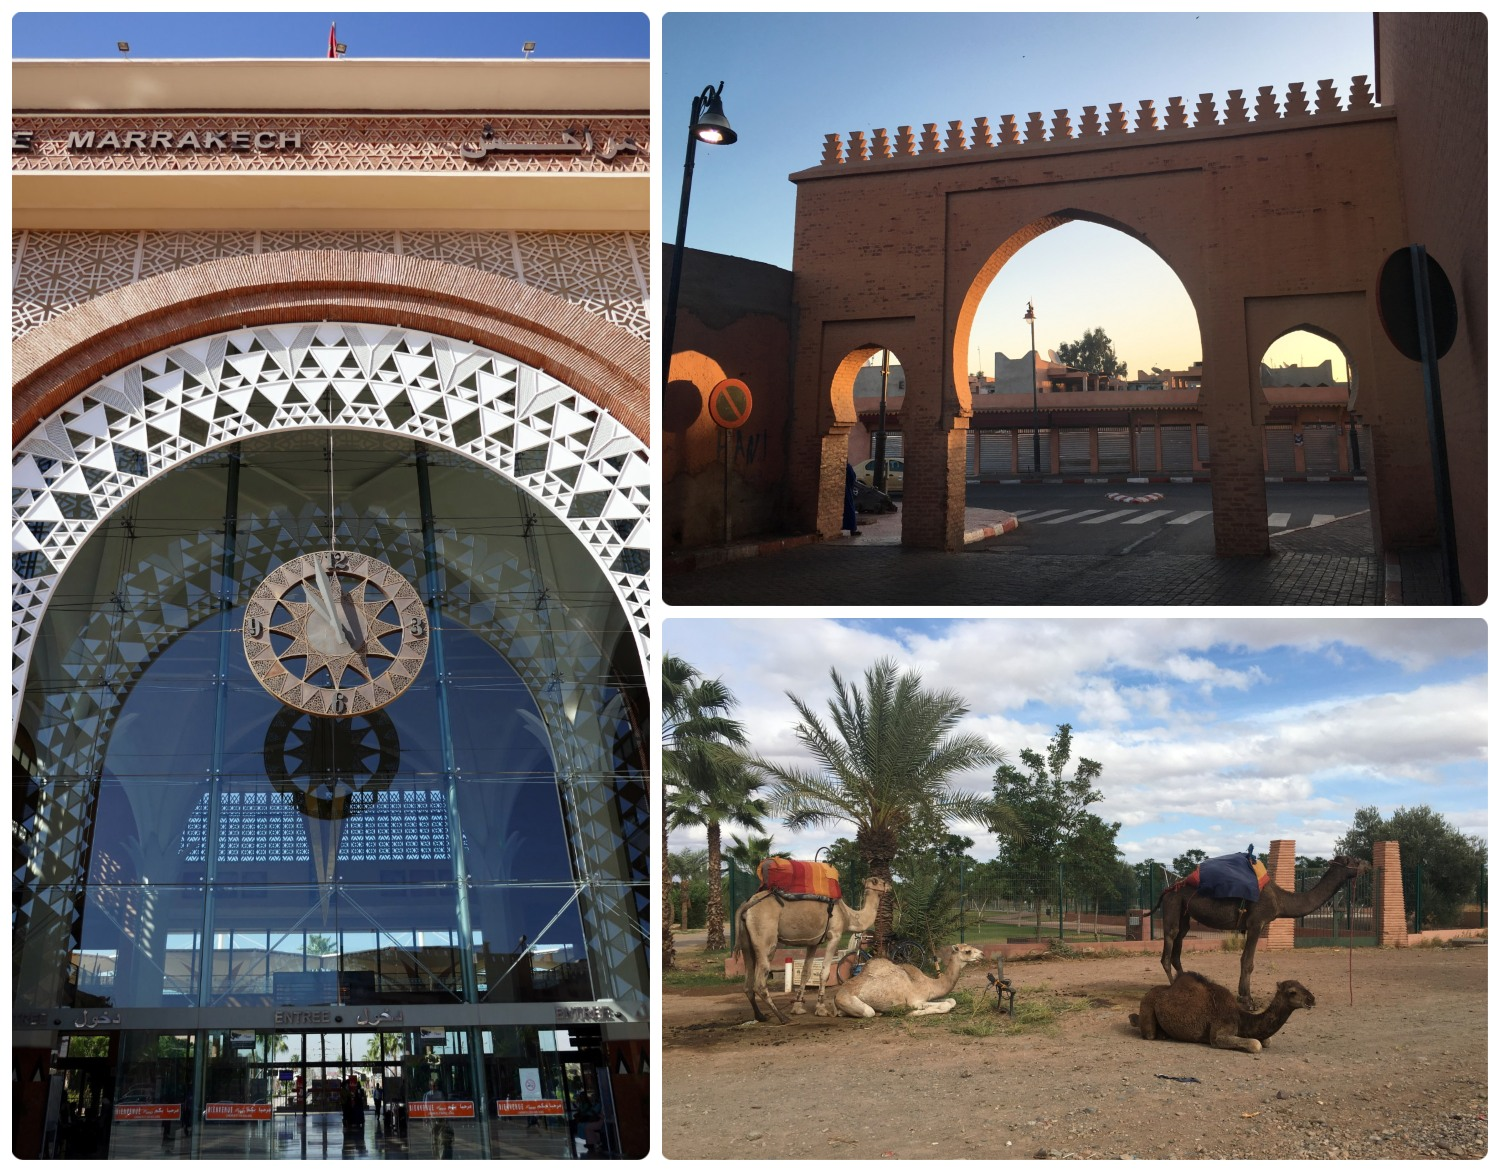 Marrakech, Morocco is a place of modern design (the train stations in New Town in the left image), historical sights (a gate in the Medina - Old Town in the top right image), and rich culture (camels in bottom right image).